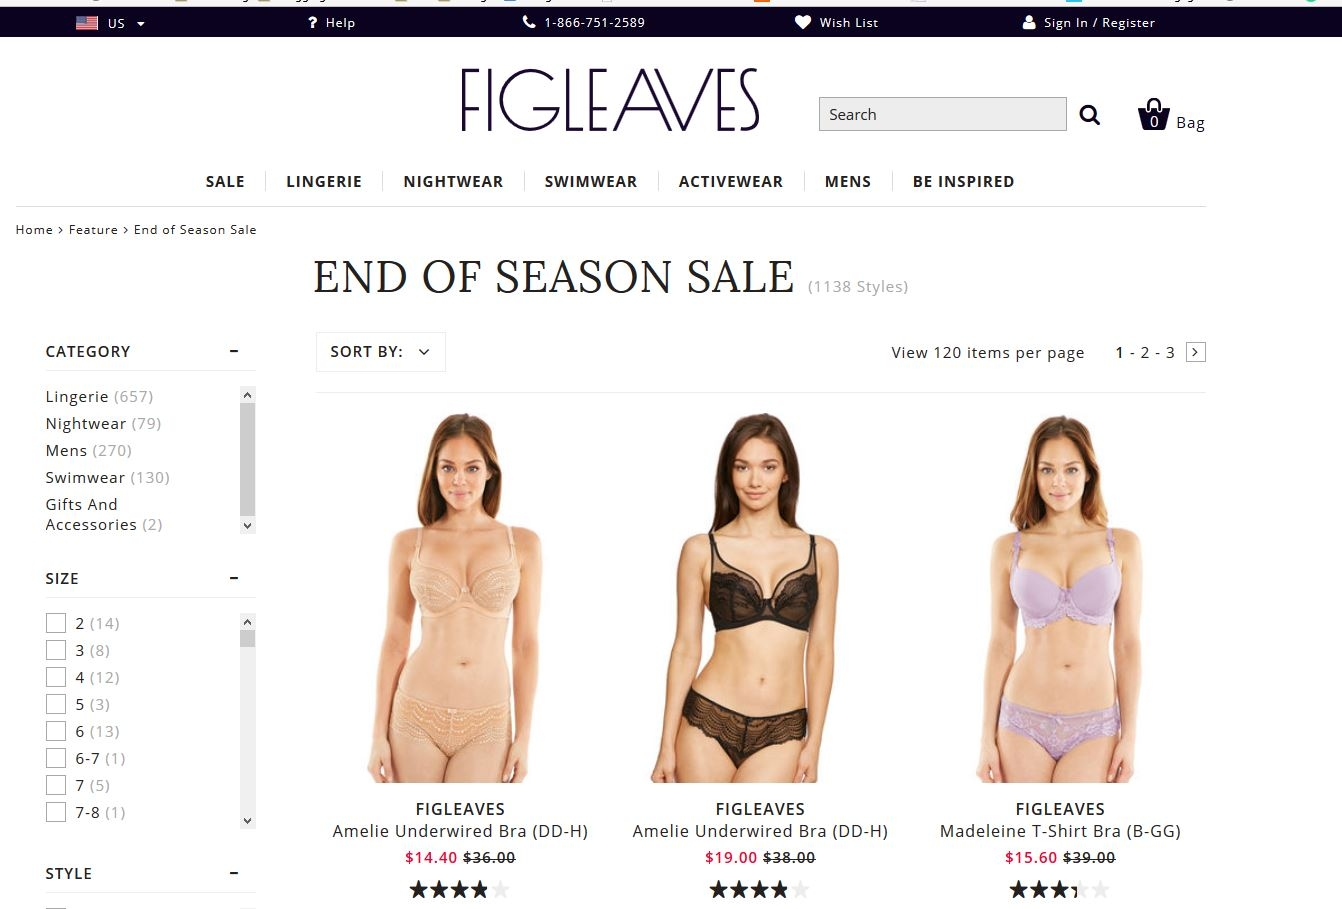 Active Figleaves Vouchers & Discount Codes for November 10% off Don't miss this great offer from this merchant where you can get a discount on your purchases by applying this voucher code